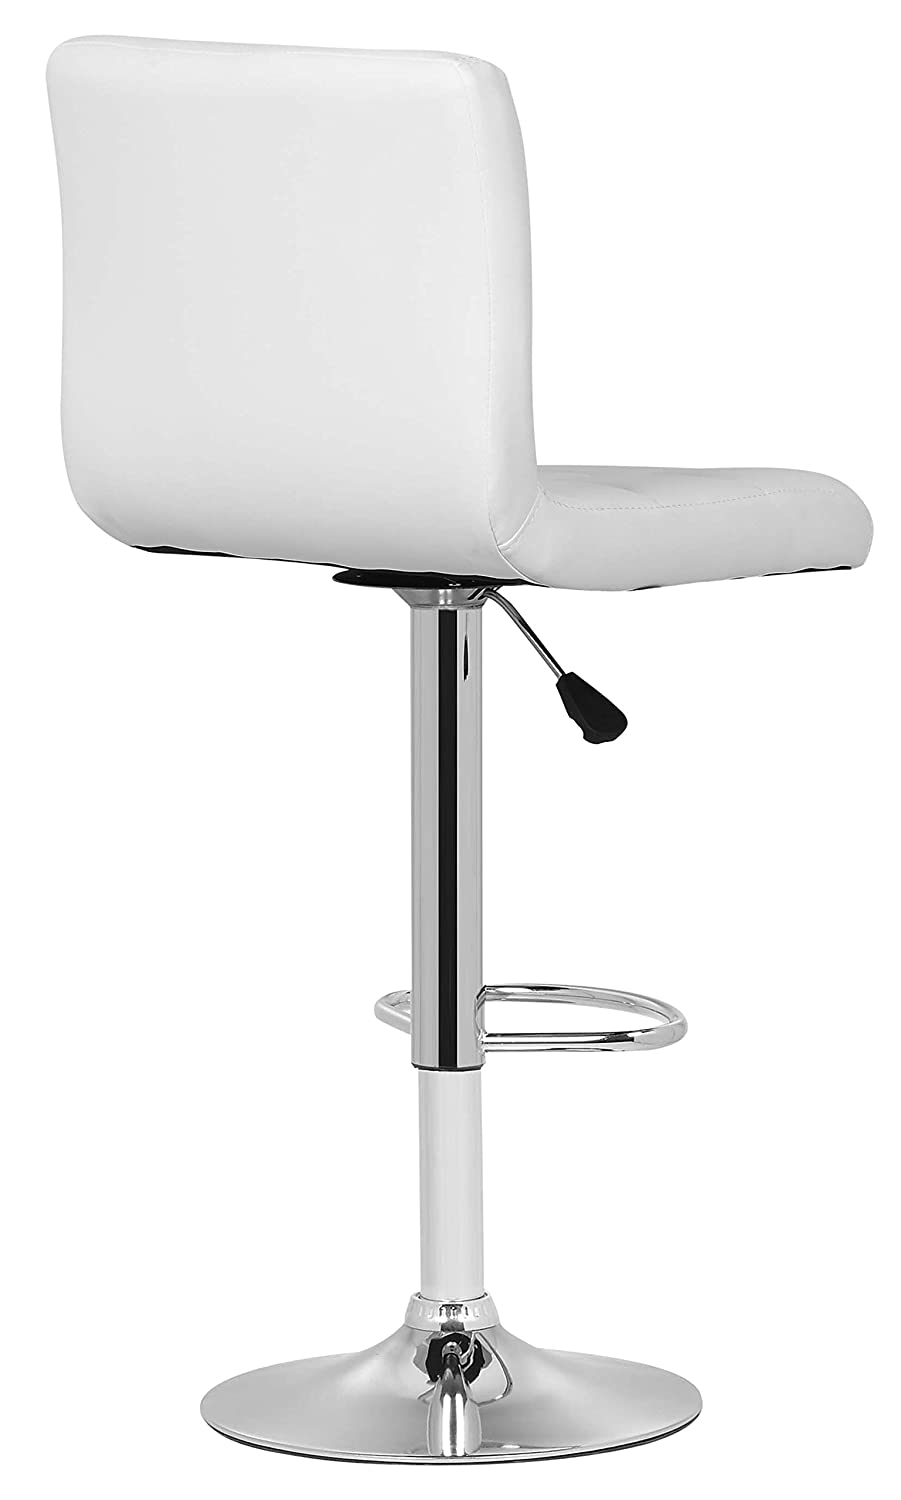 Your Price Furniture.com 1 Milan Bar Stool White Faux Leather Padded Seat /& Backs Swivel Kitchen Island Breakfast Bar Chair Height Adjustable